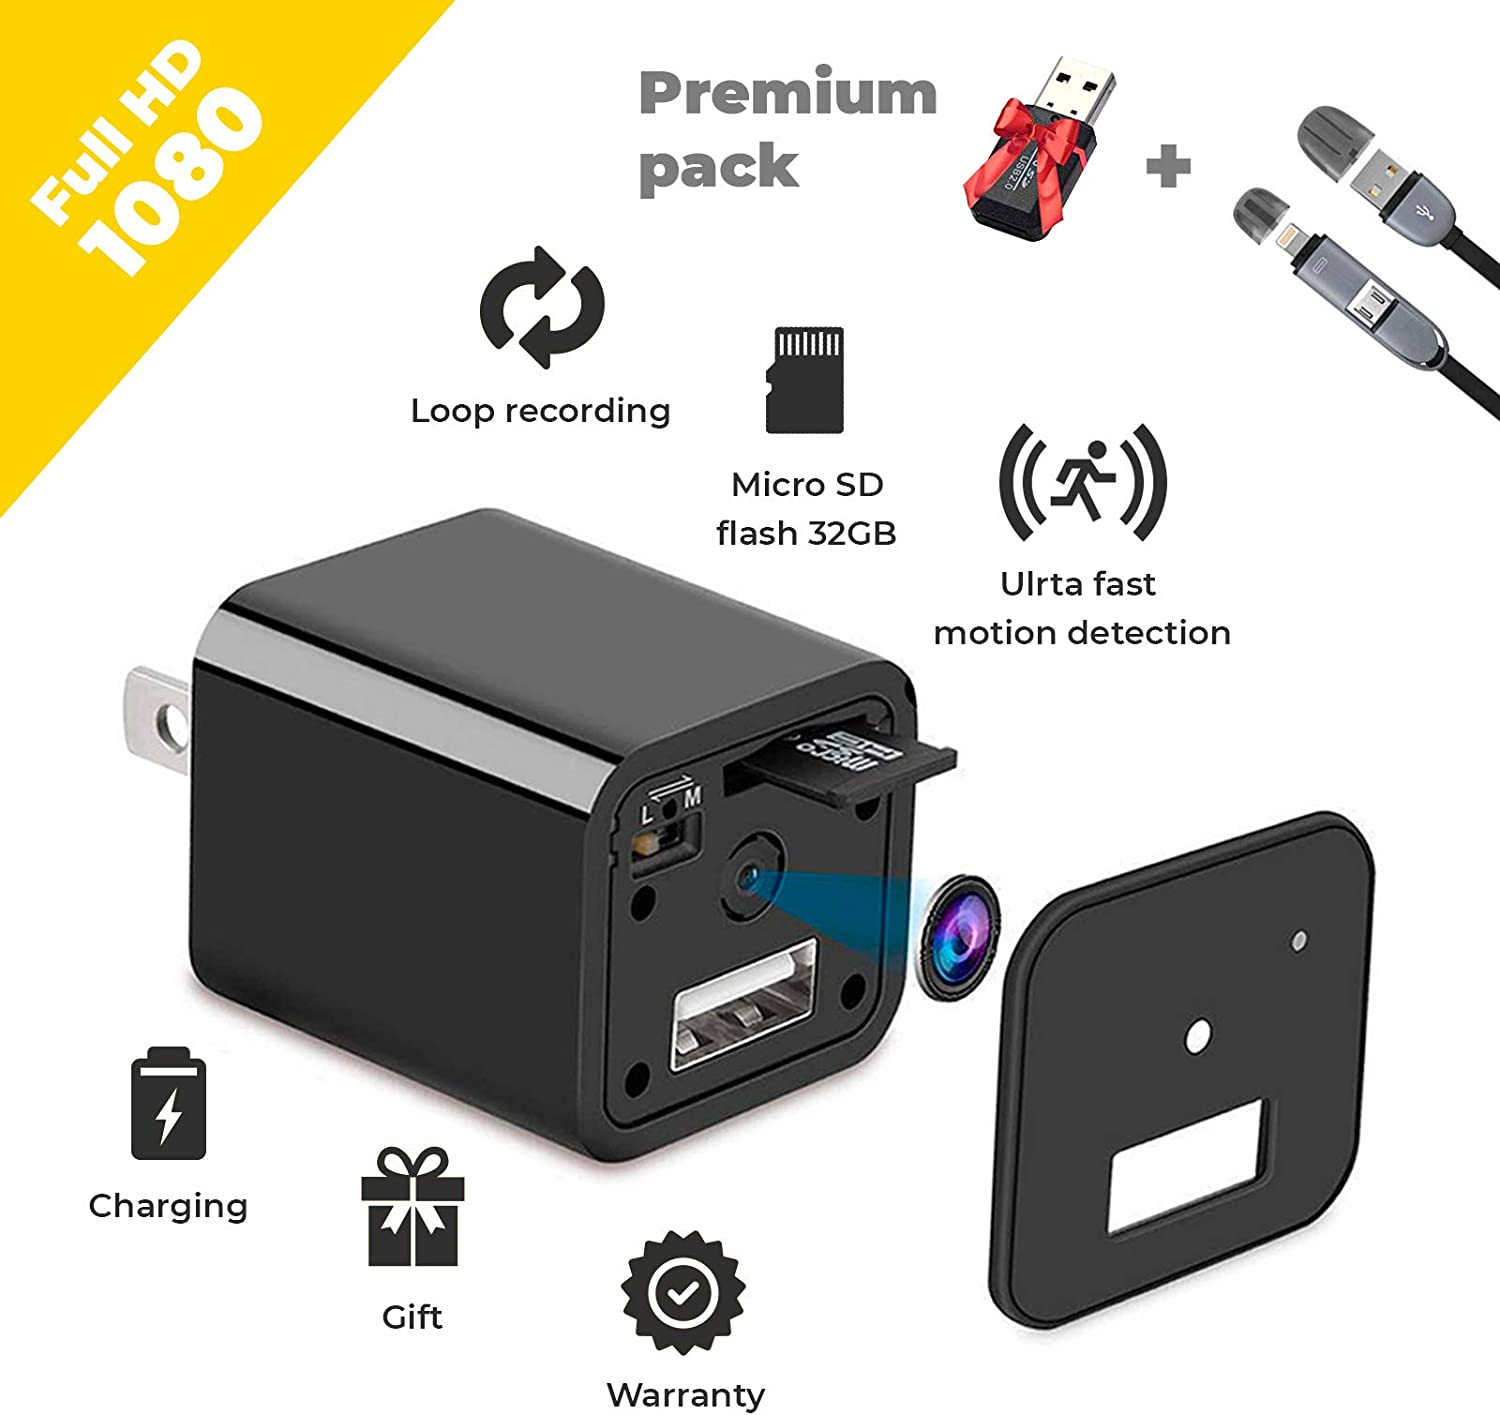 Spy Camera - HD 1080P Hidden Camera USB Wall Charger - Premium Pack - USB Hidden Cameras – Best Mini Spy Camera Charger Wireless Video Recorder Home Security System - Motion Detector Nanny Camera